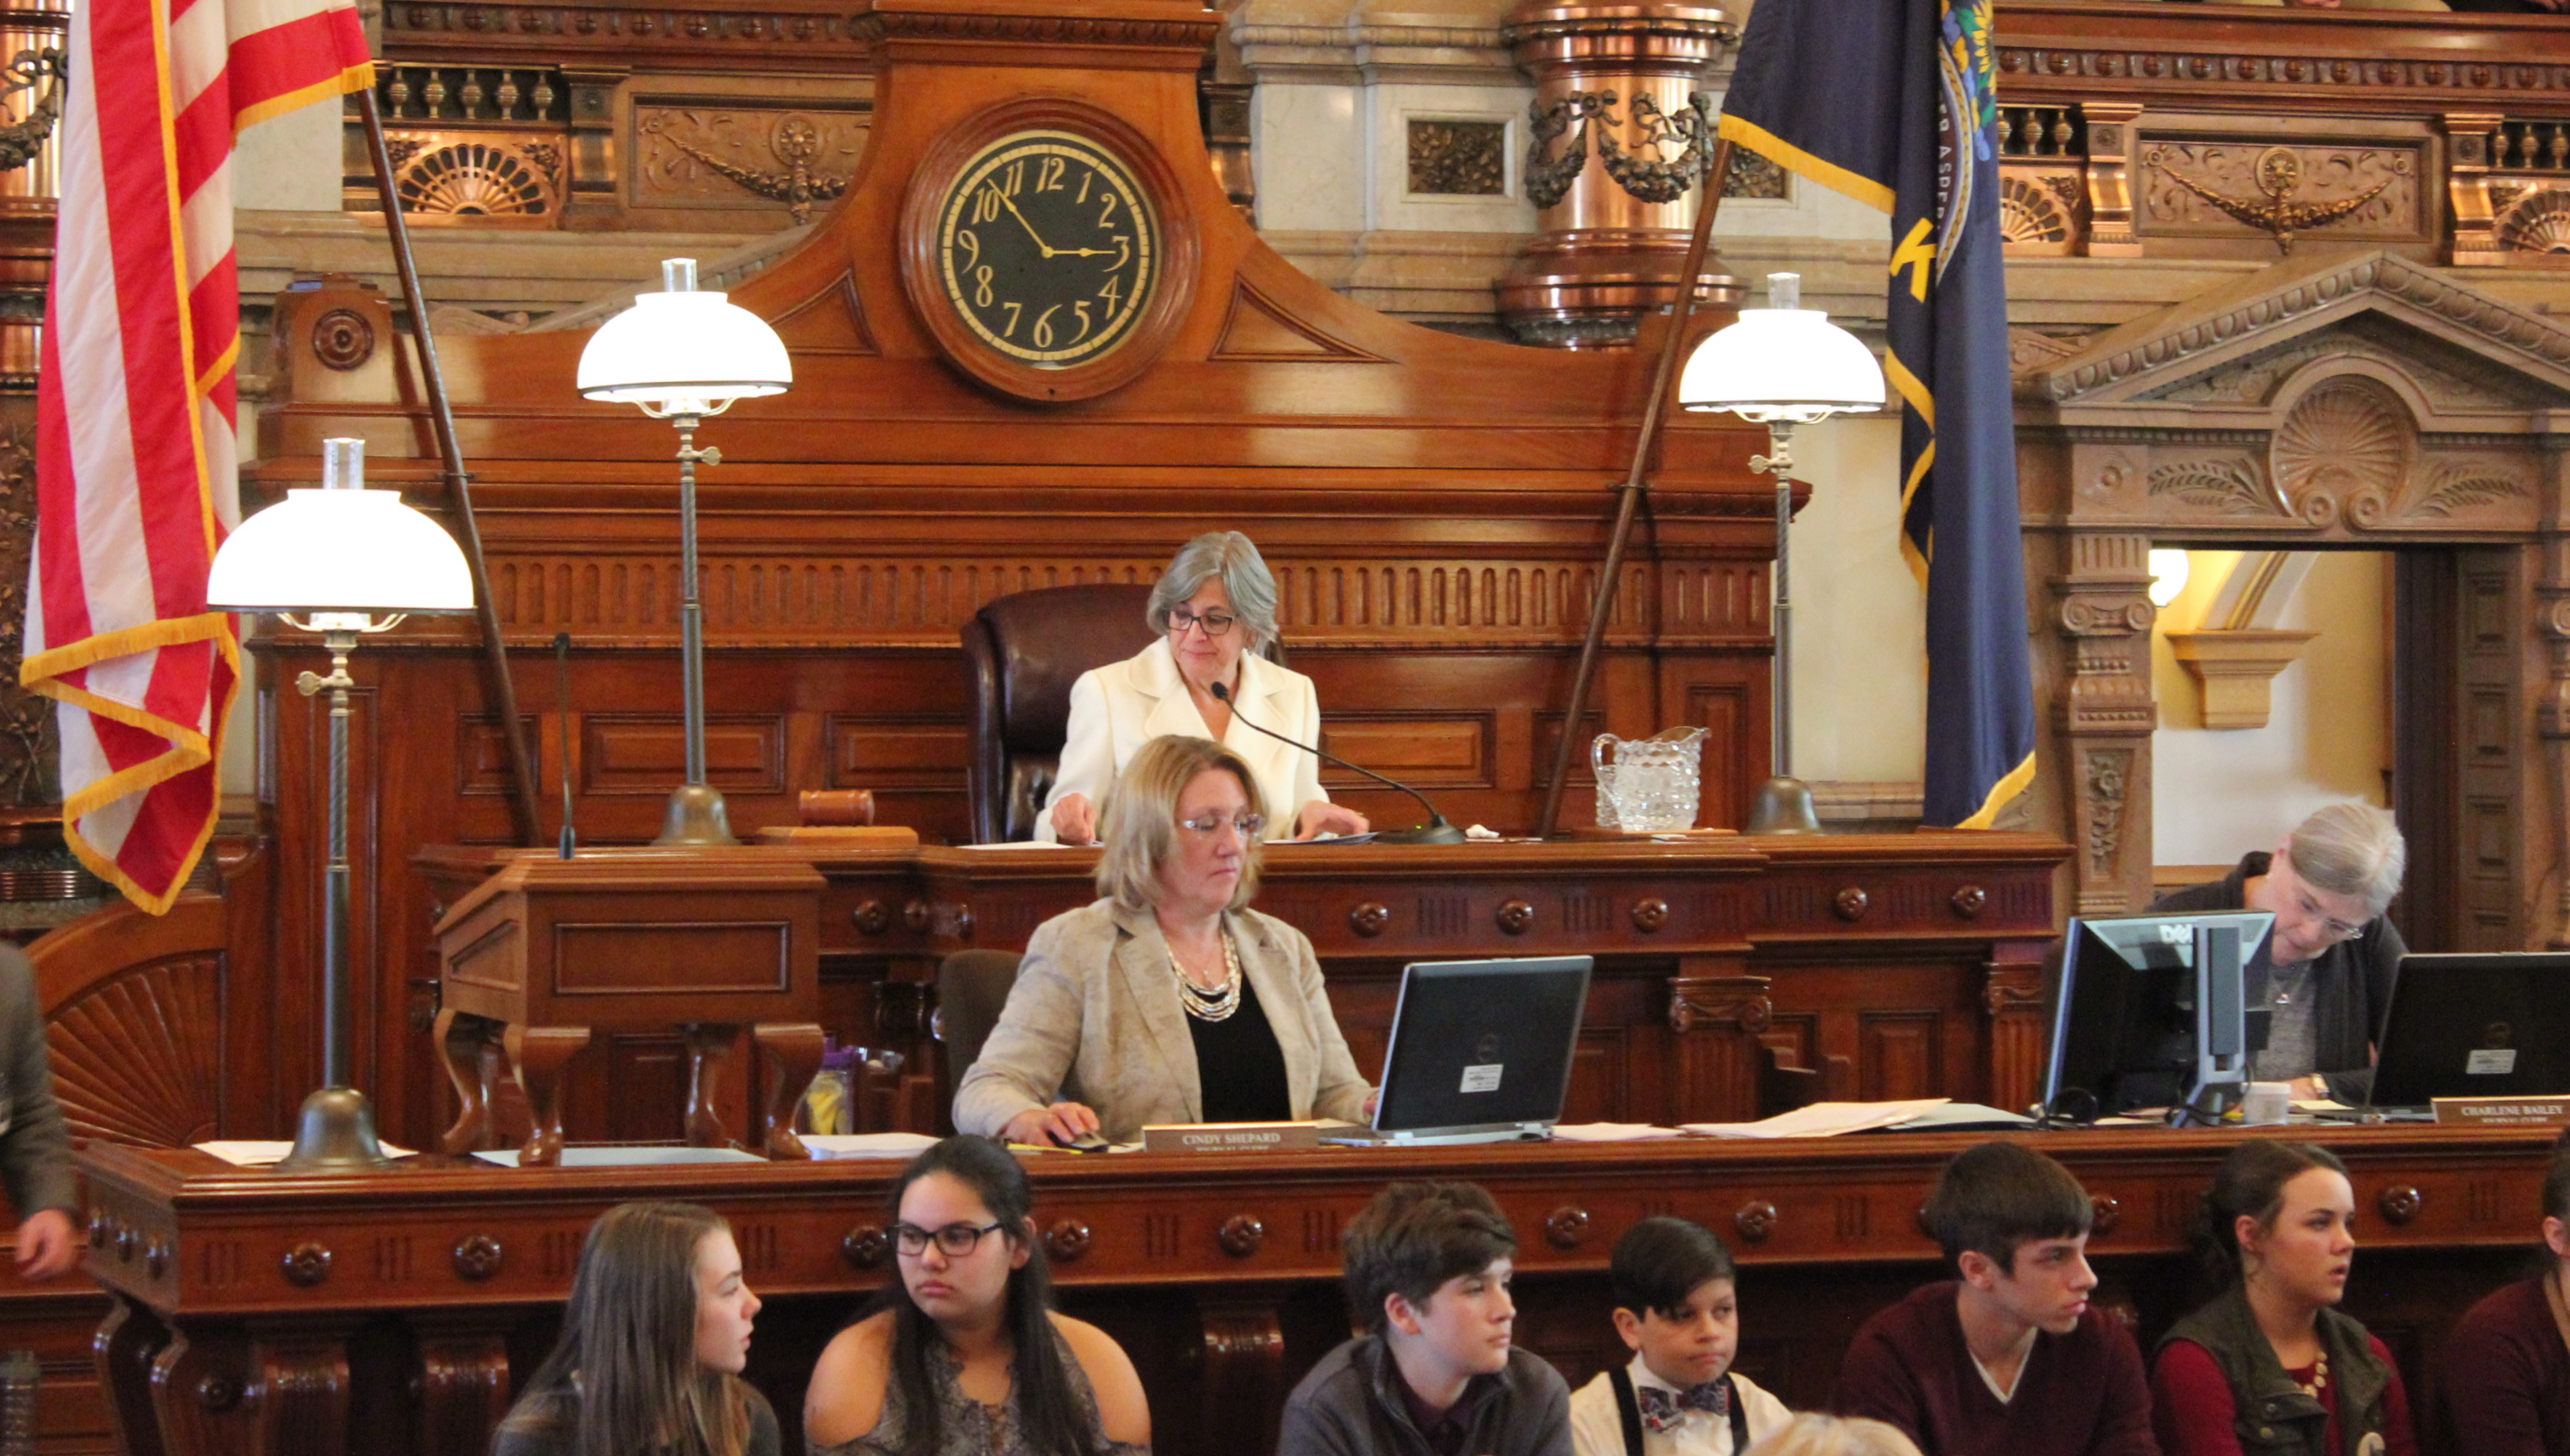 Senate President Susan Wagle presides over a debate earlier this year. (Photo by Stephen Koranda)